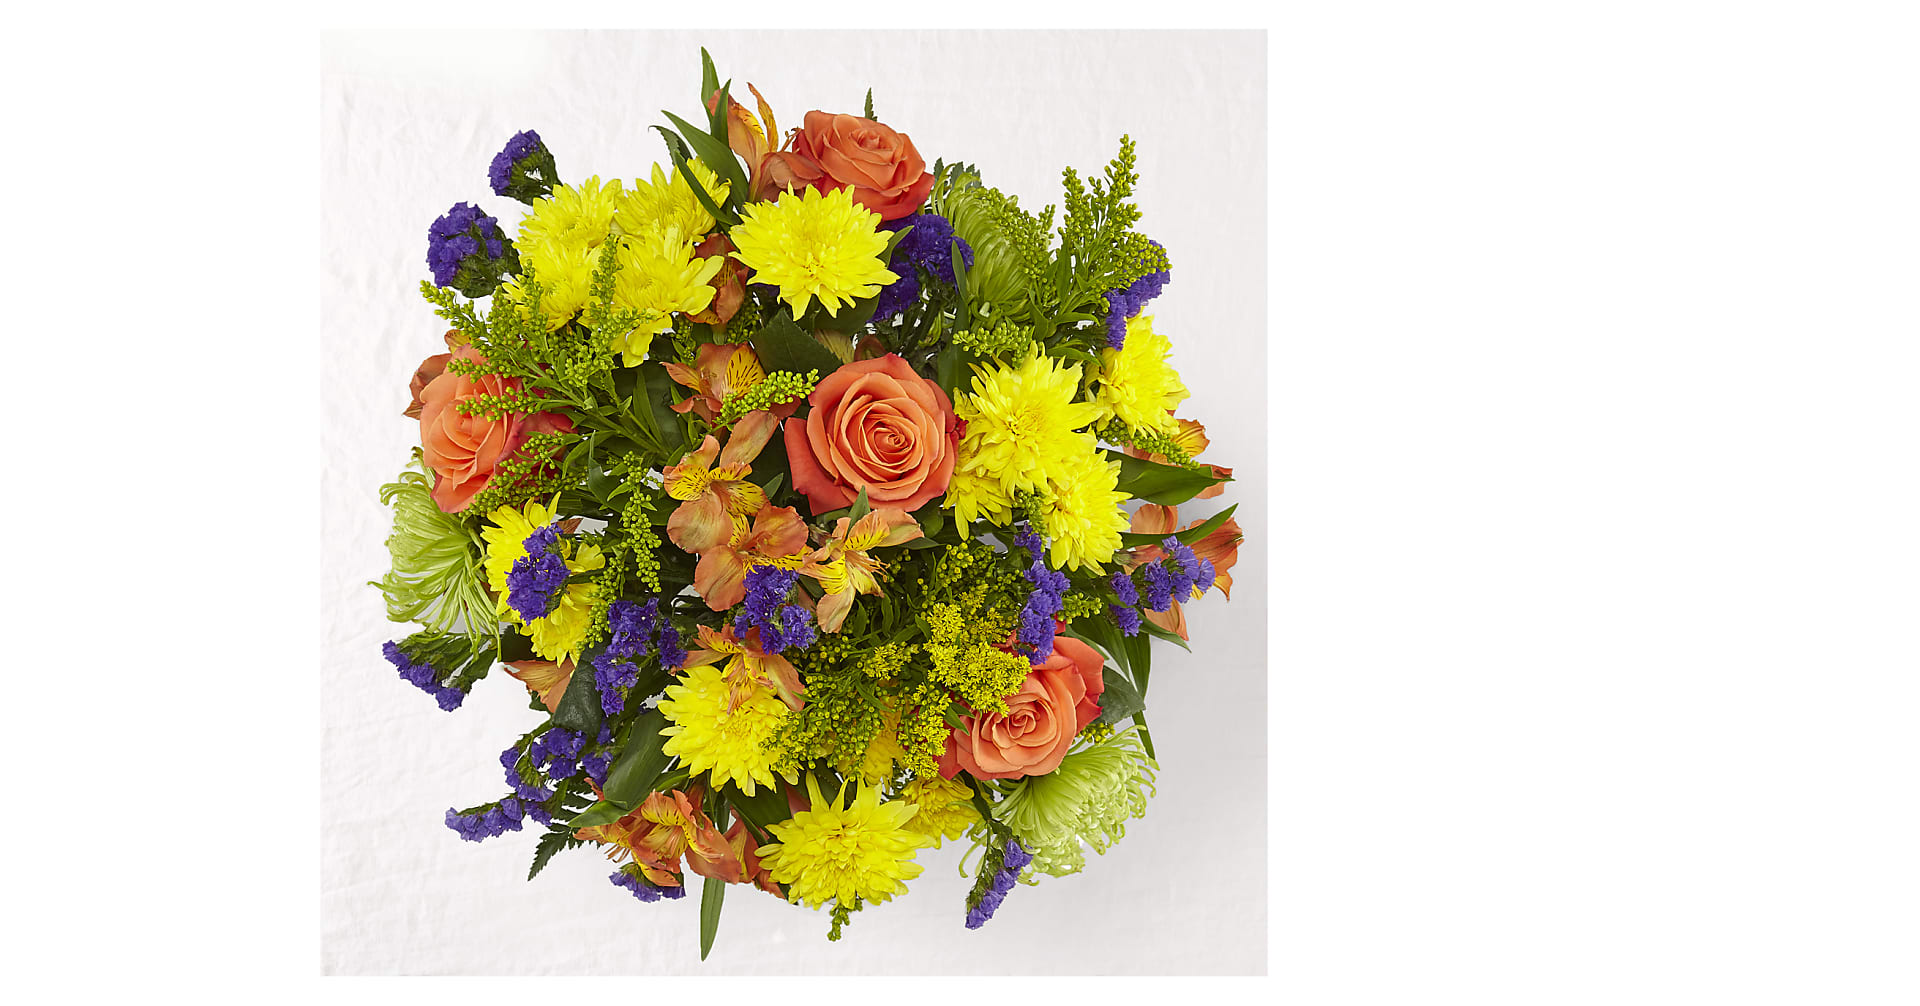 Marmalade Skies Bouquet - Image 4 Of 4